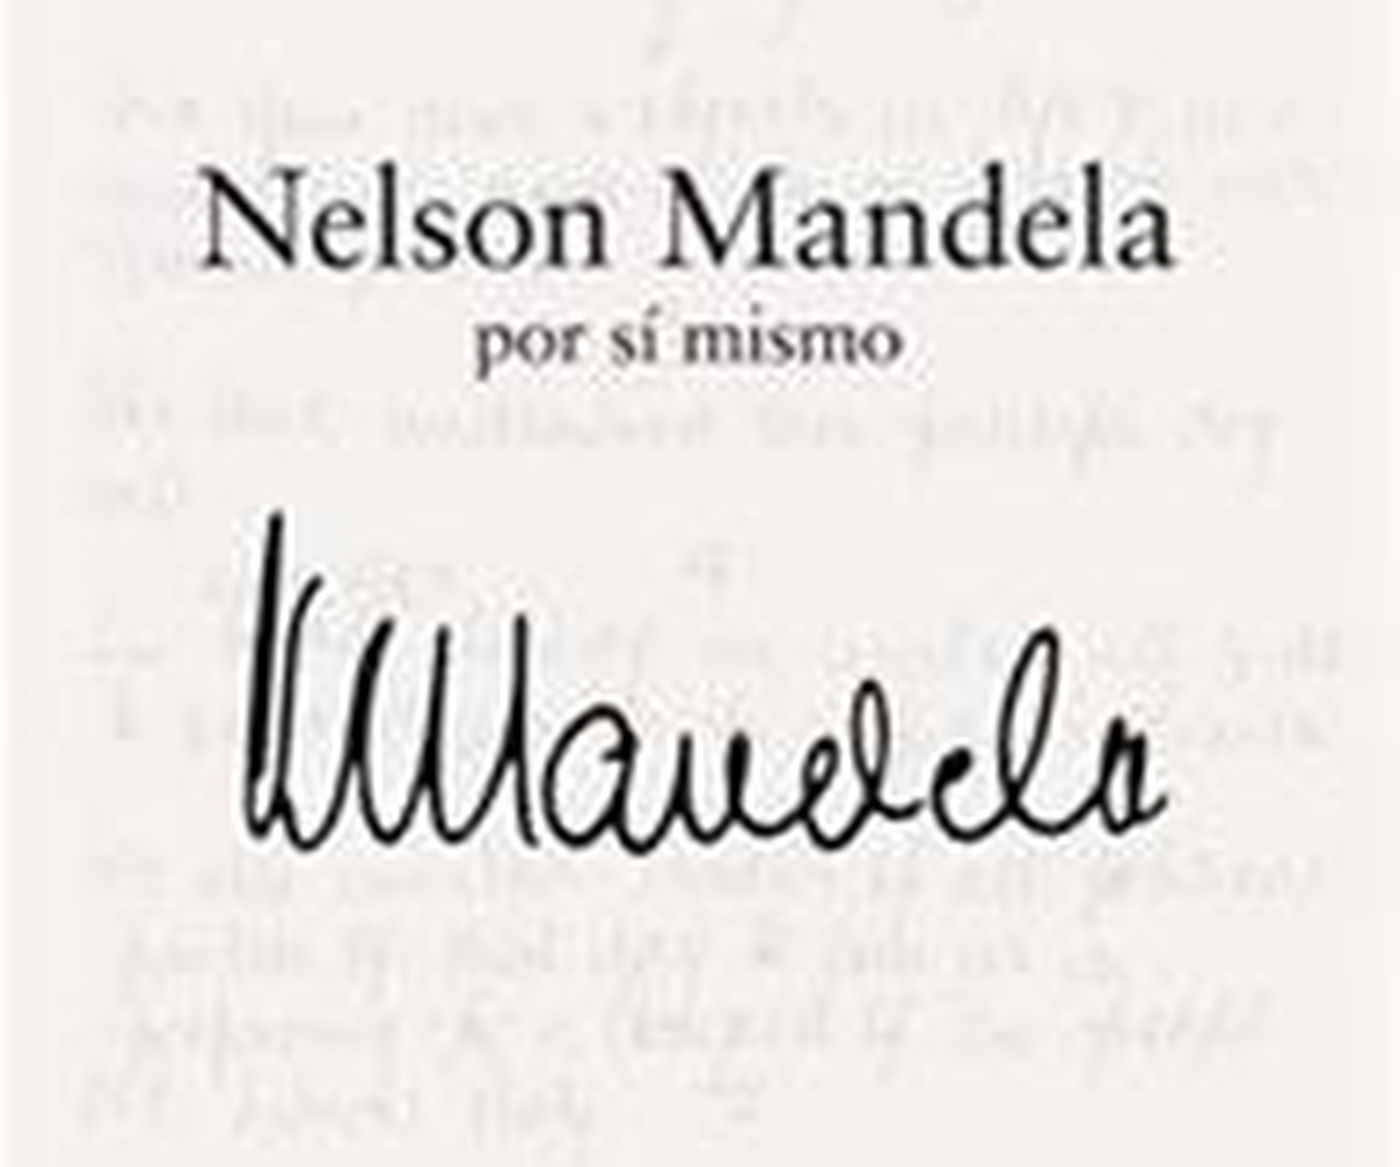 Mandela Book In Spanish